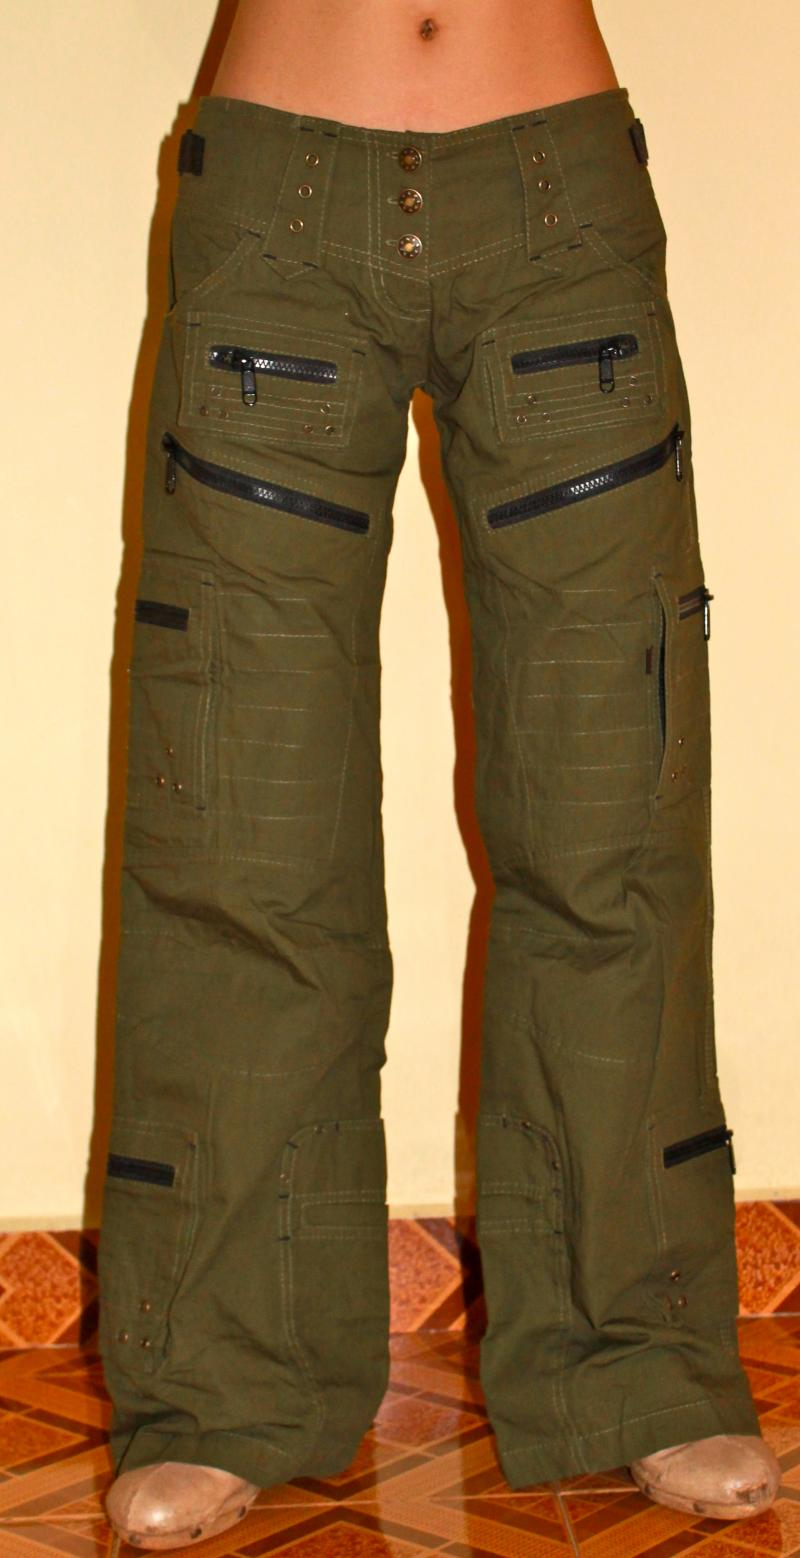 Unique The Sizing Runs From 016 And The Color Choices Are Cargo Green  Pants Felt Very Tight Around Our Thighs We Even Noticed It While Scrambling Around In The Desert, And We Did Not Have The Same Mobility In These Pants As We Did With